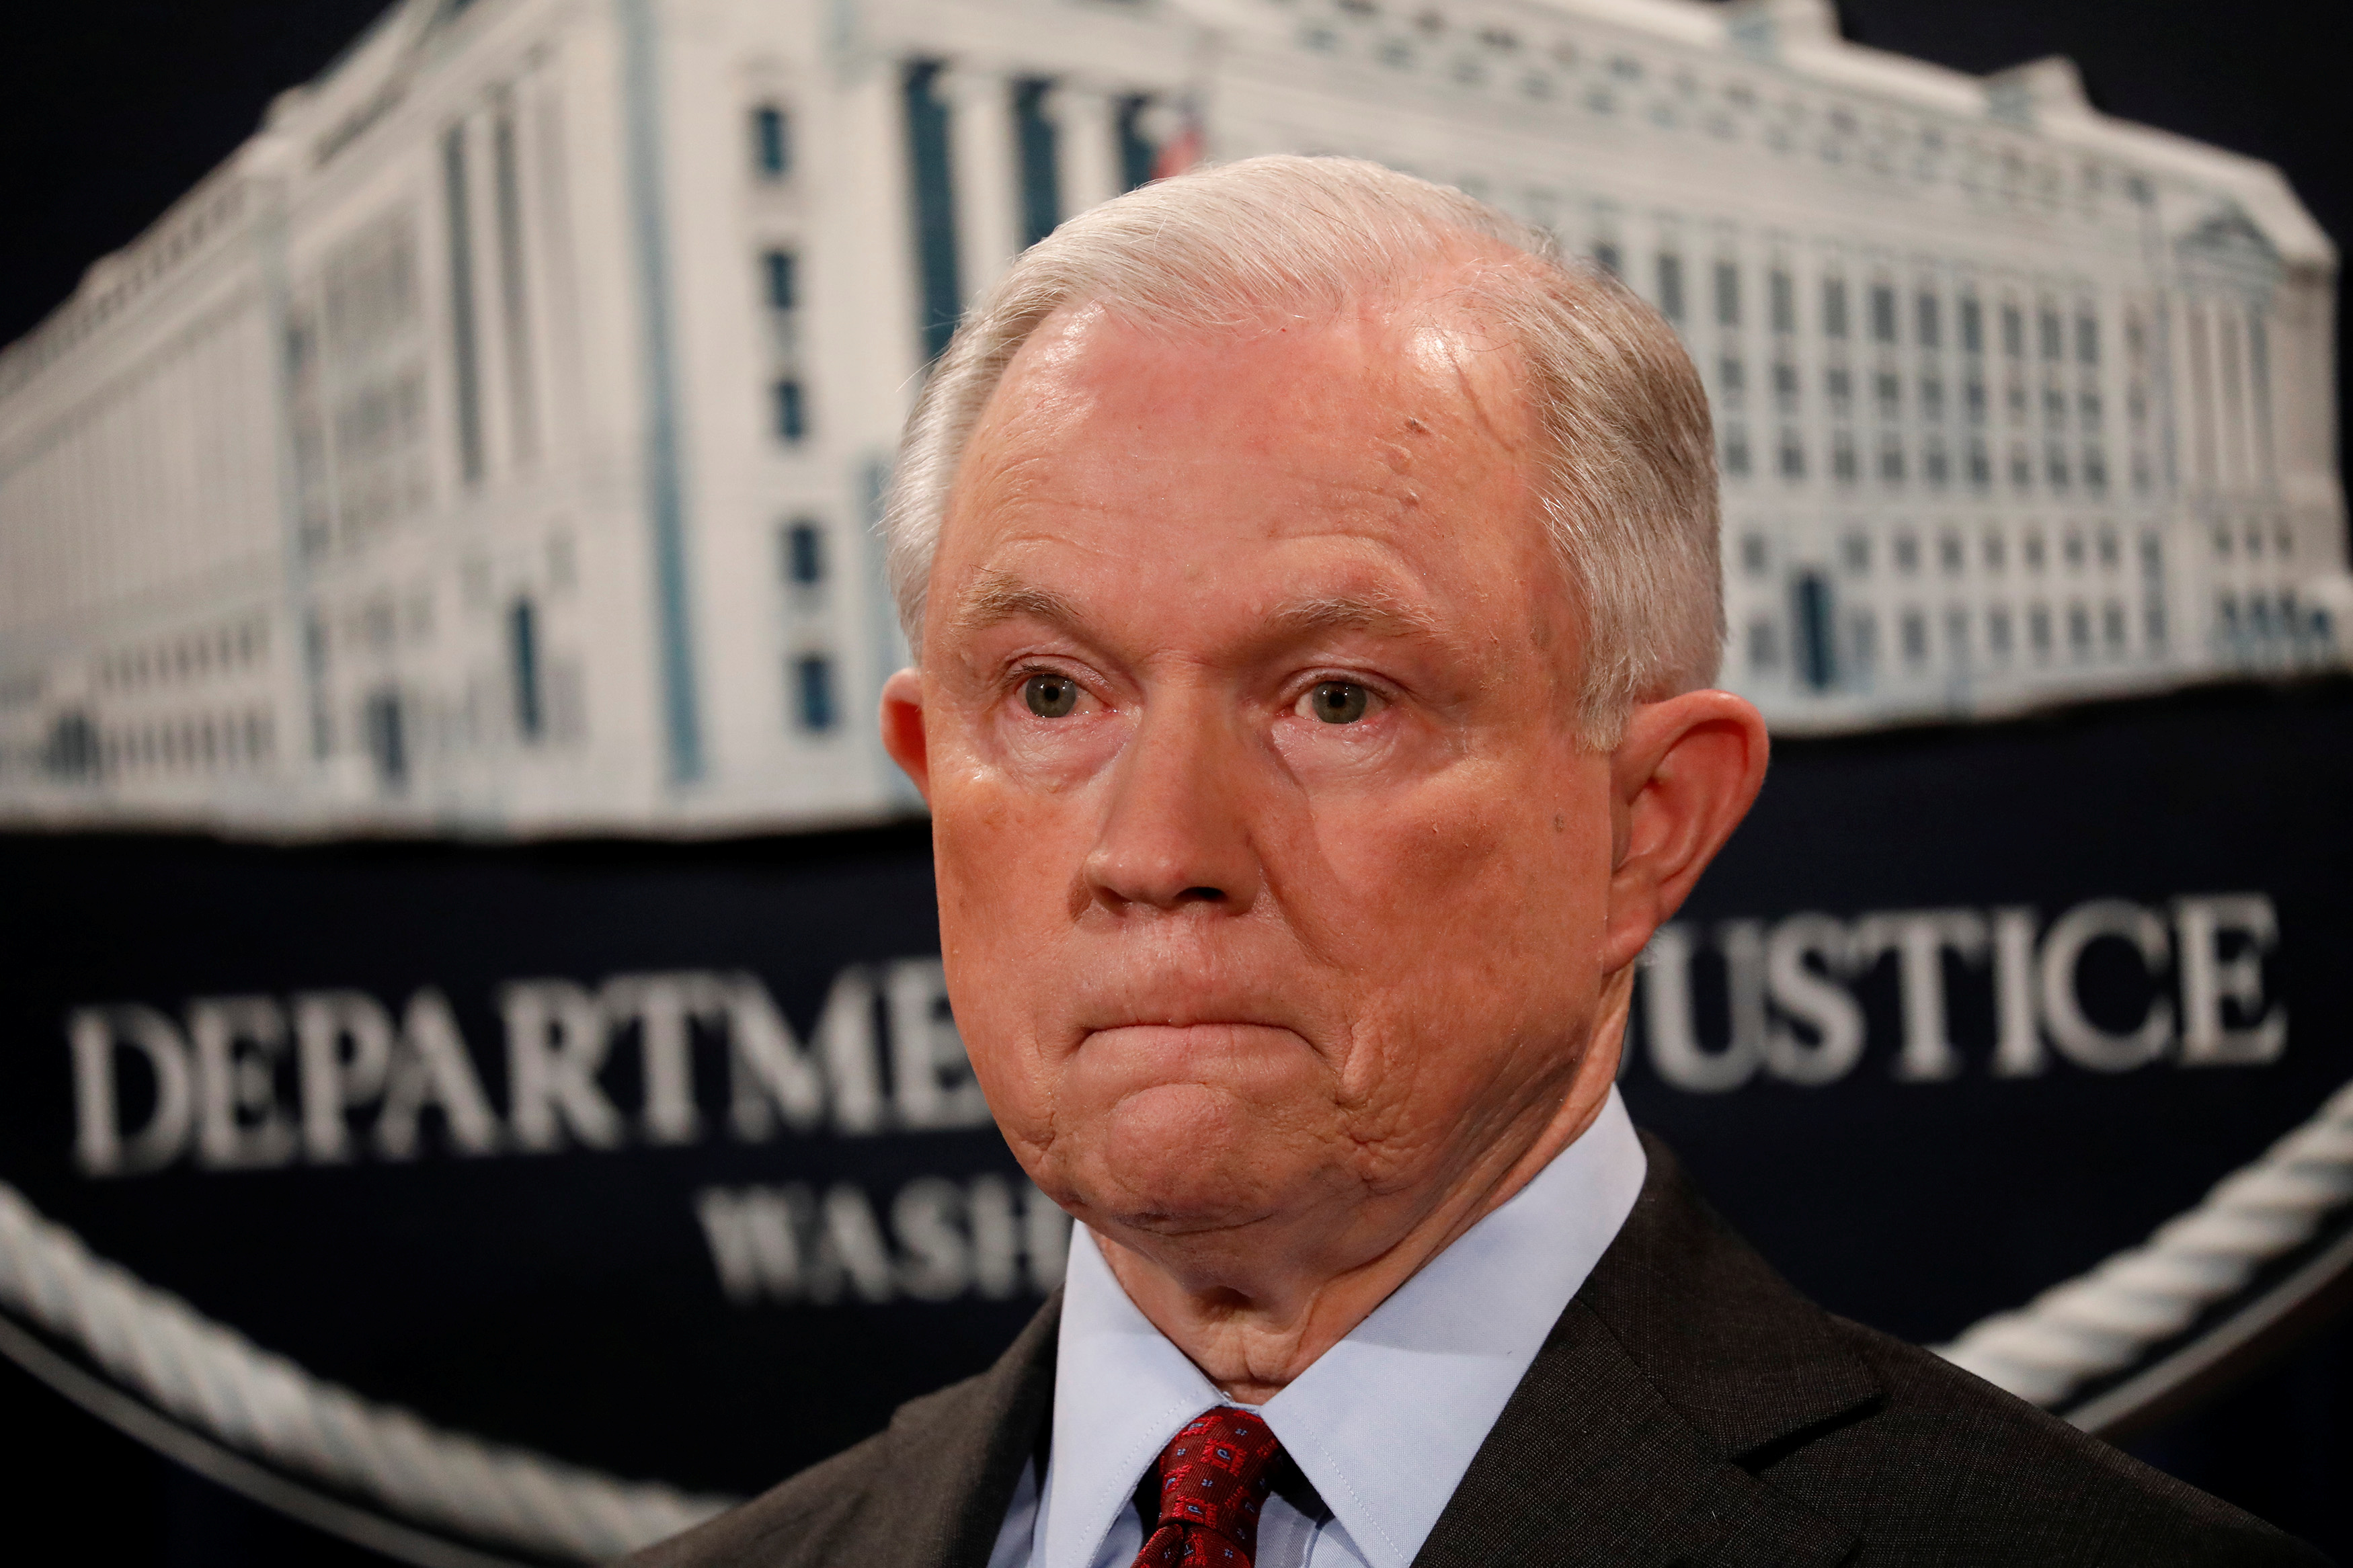 jeff-sessions-CrimeShop.jpg